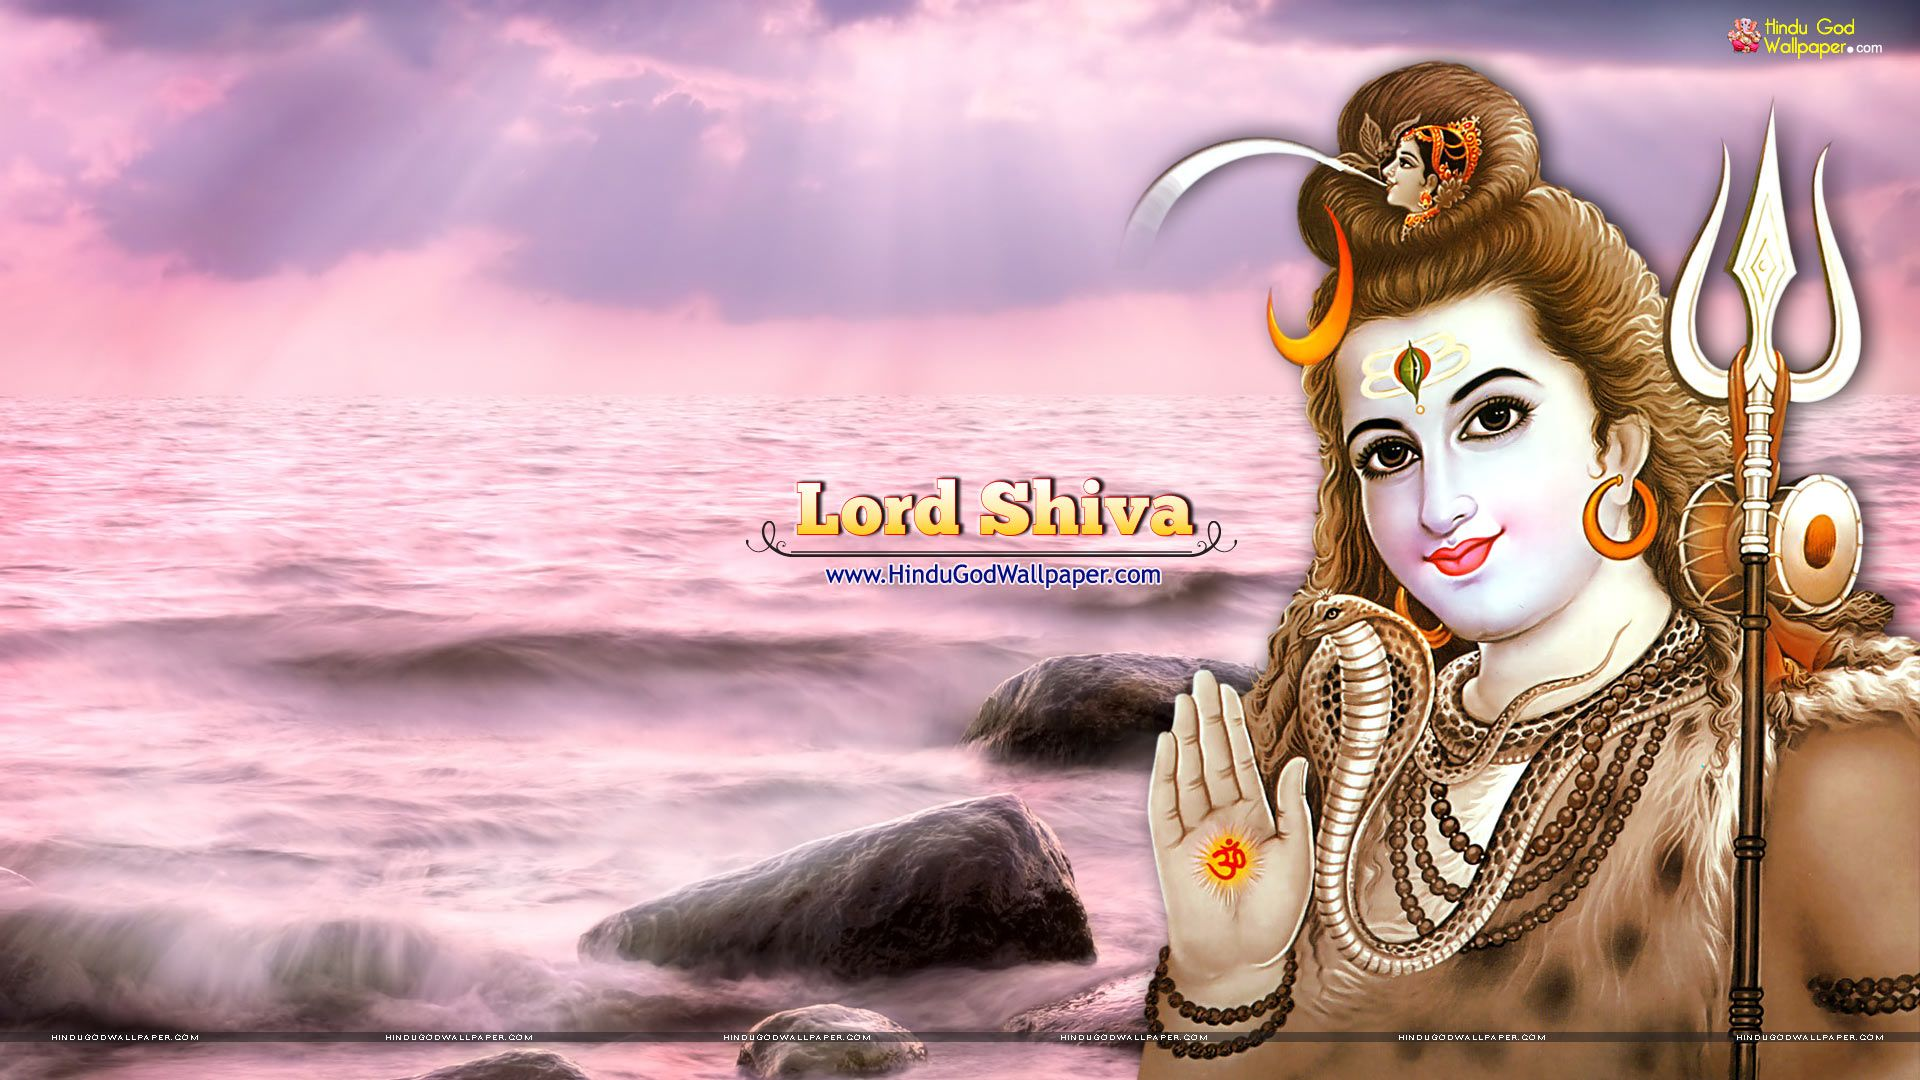 Hindu Gods Hd Wallpapers In 2020 Lord Shiva Hd Wallpaper Shiva Wallpaper Shiva